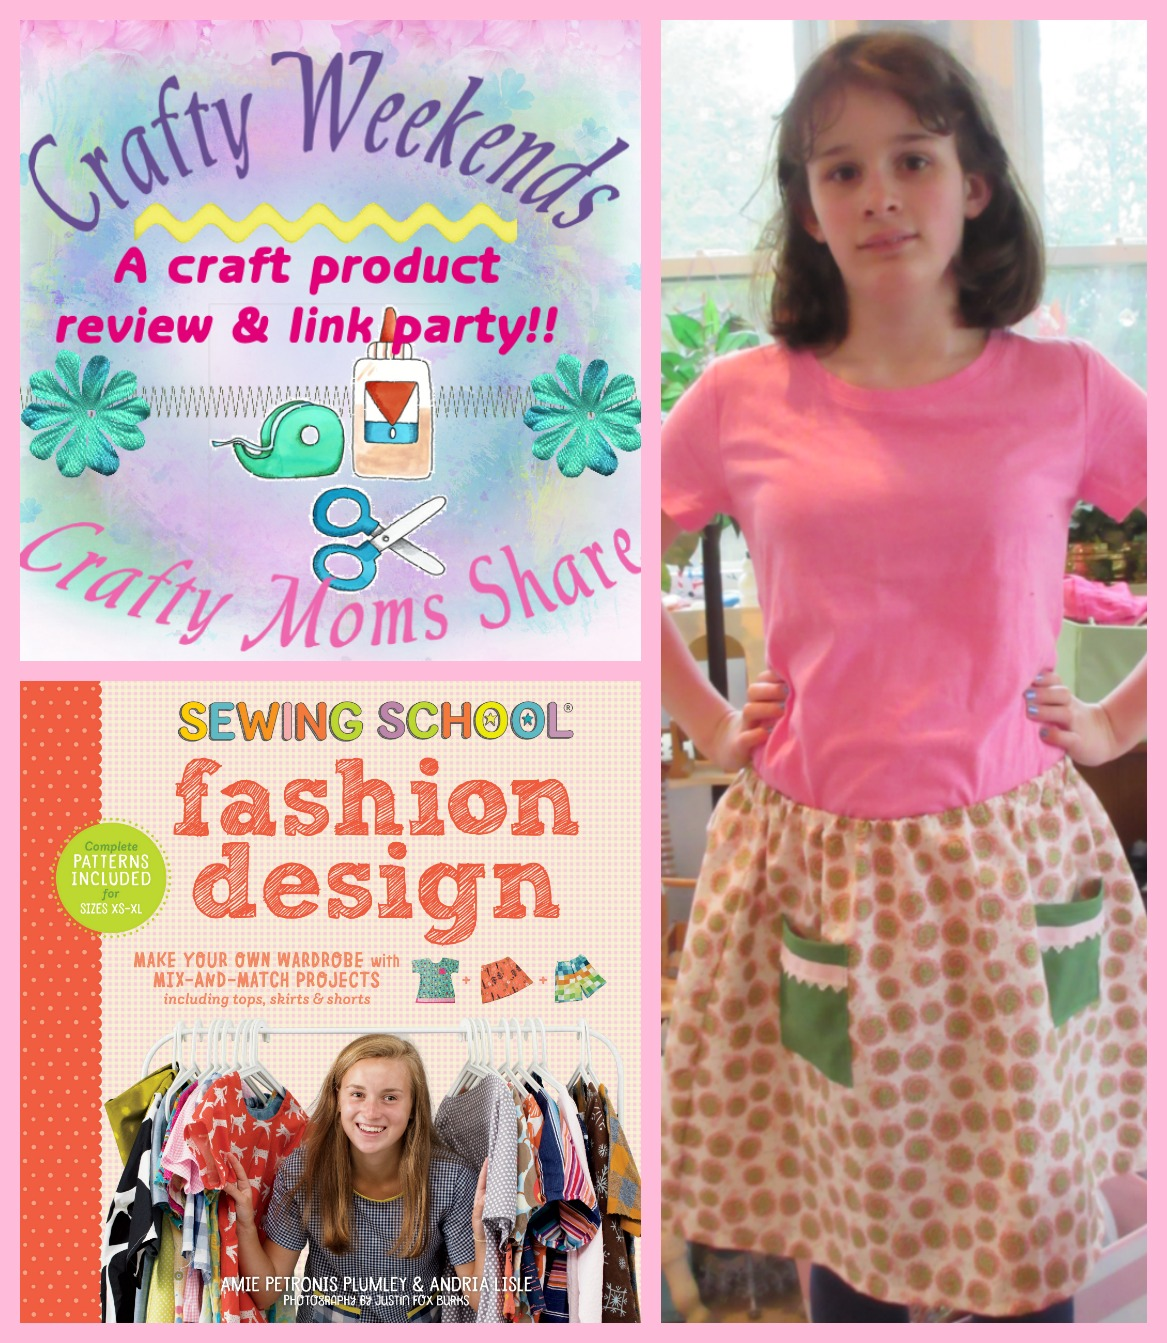 Crafty Moms Share Sewing School Fashion Design A Crafty Weekends Review Link Party